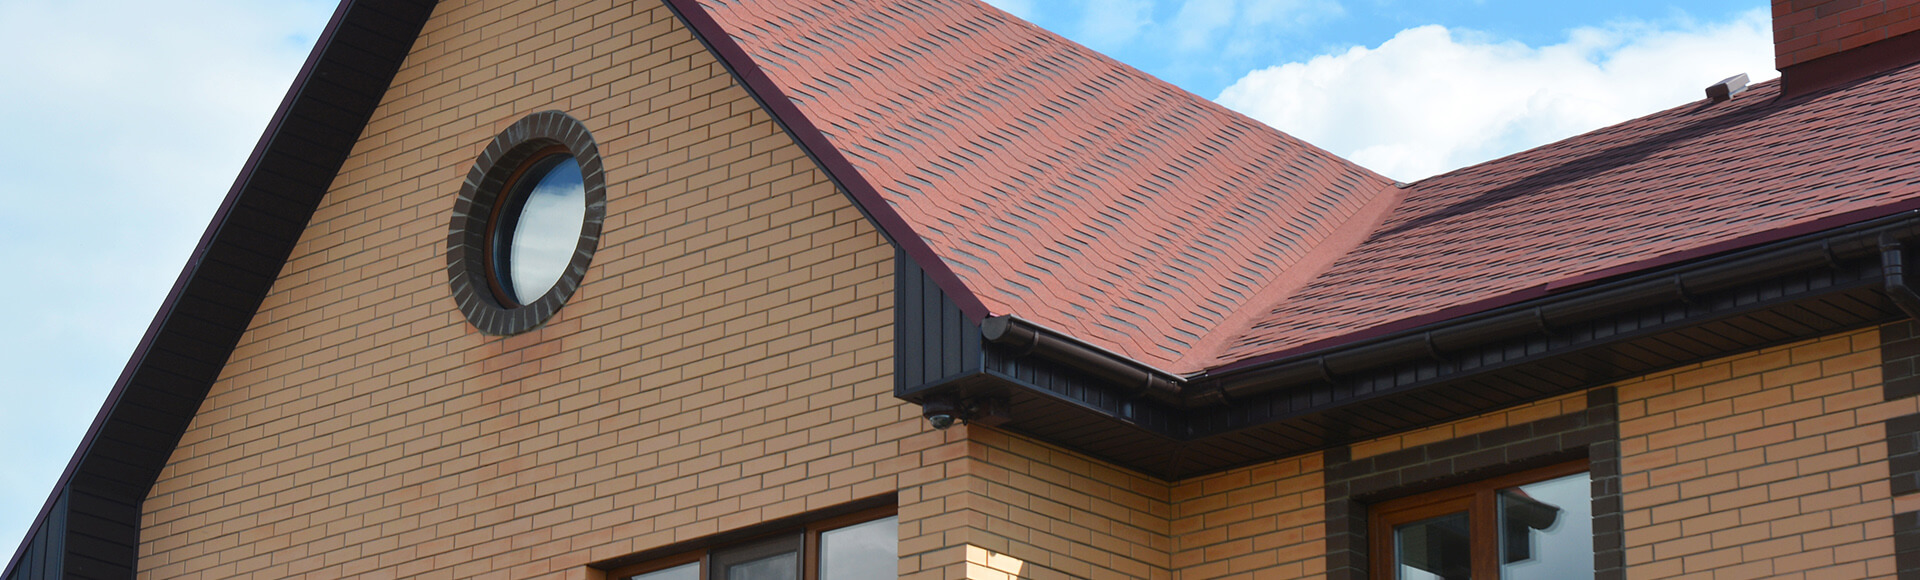 Columbus Roofing Company, Roofing Contractor and Roofer